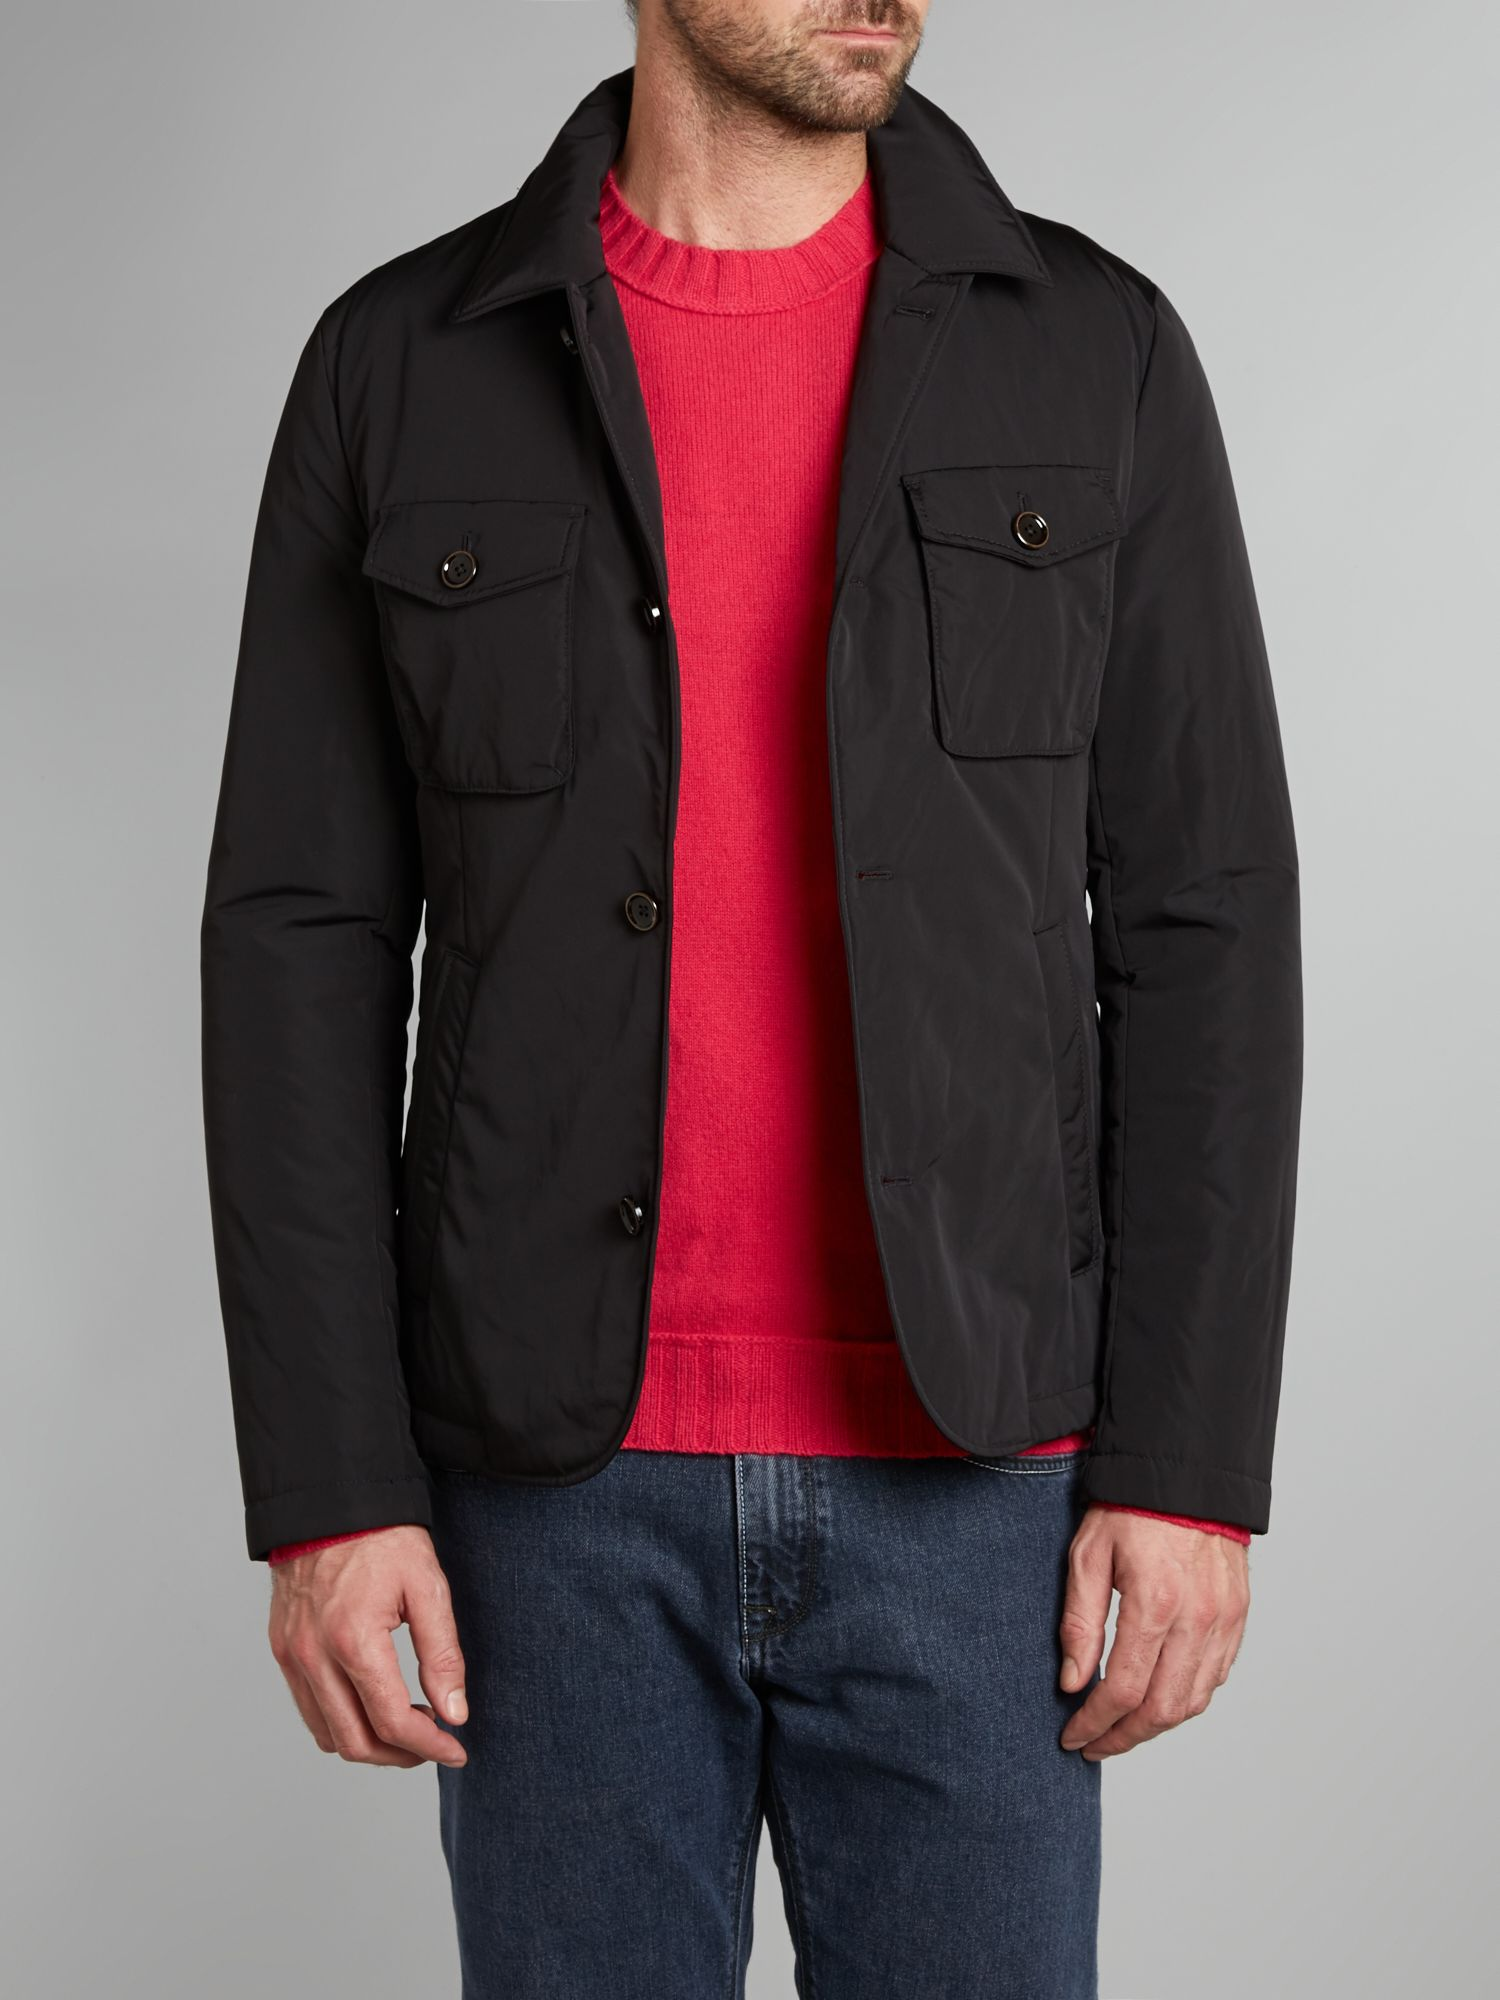 Four pocket short jacket